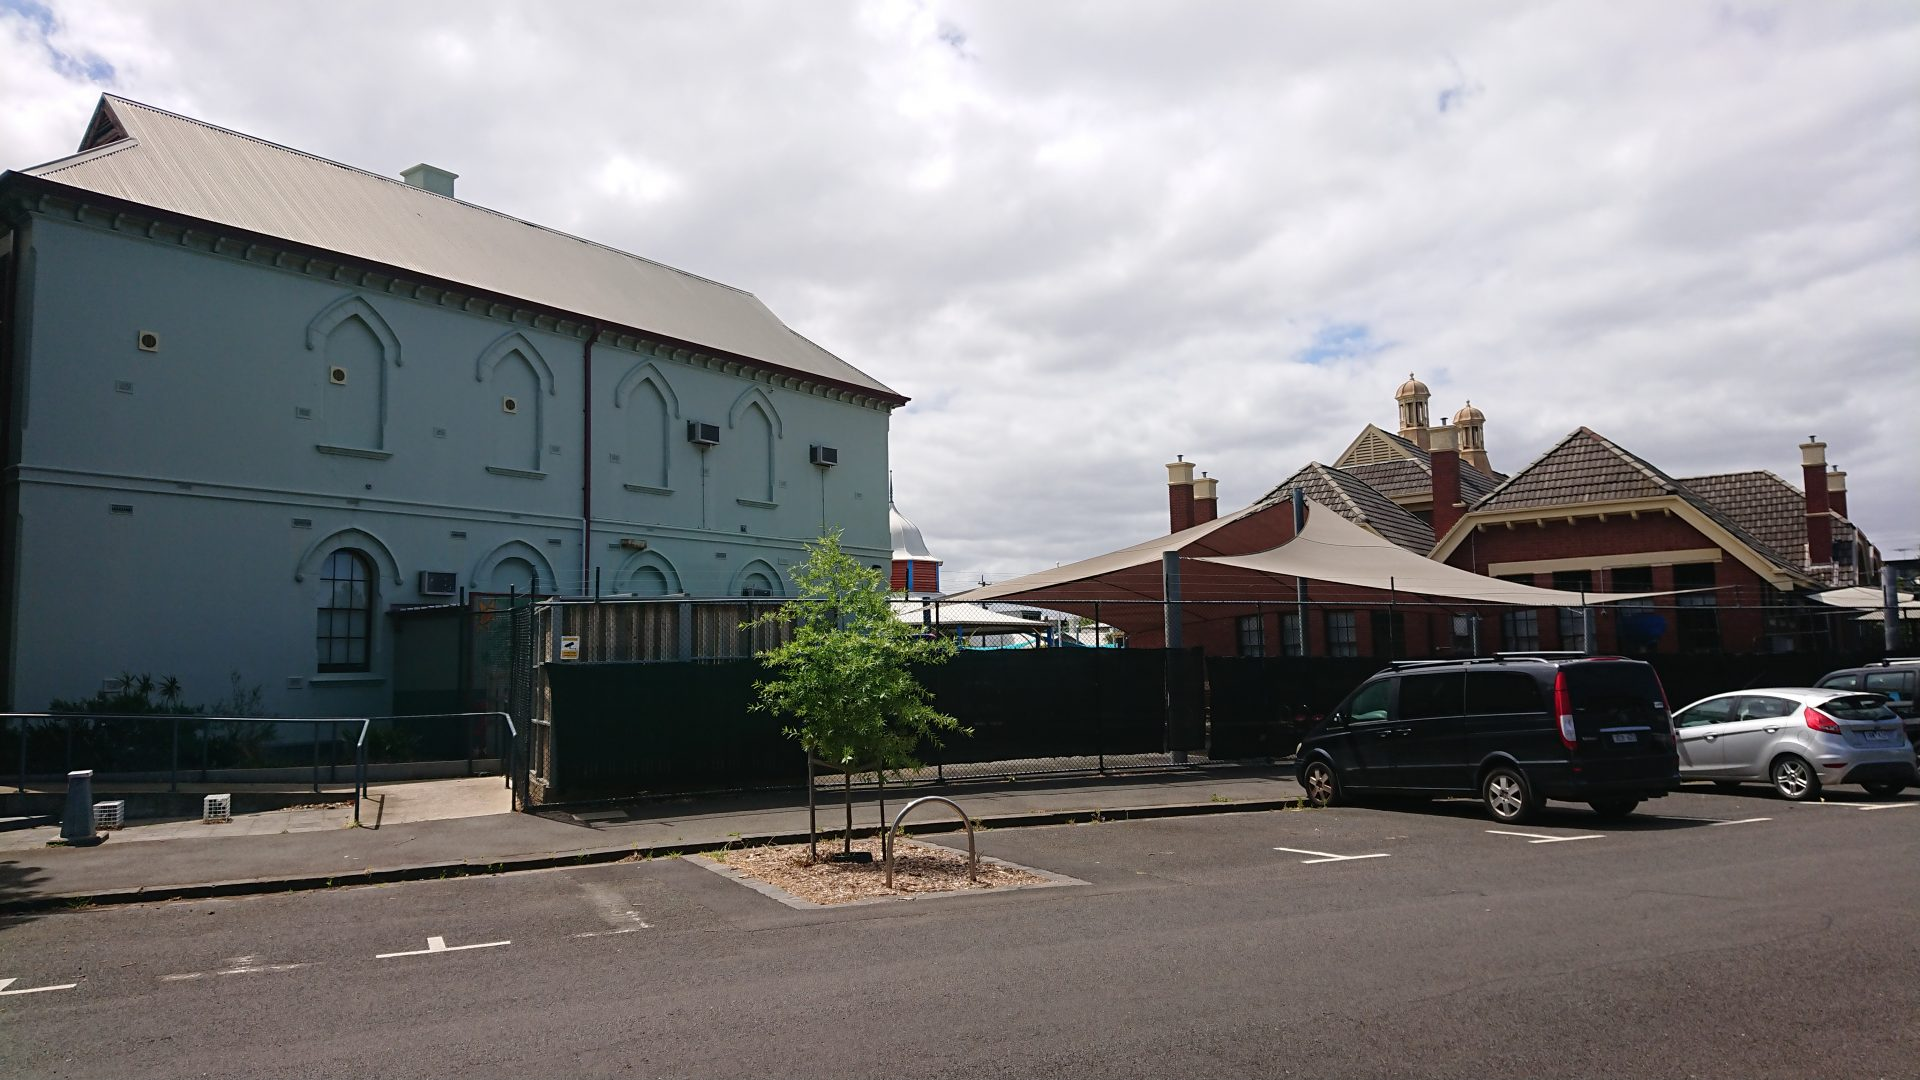 Port Melbourne Primary School (Nott Street) now